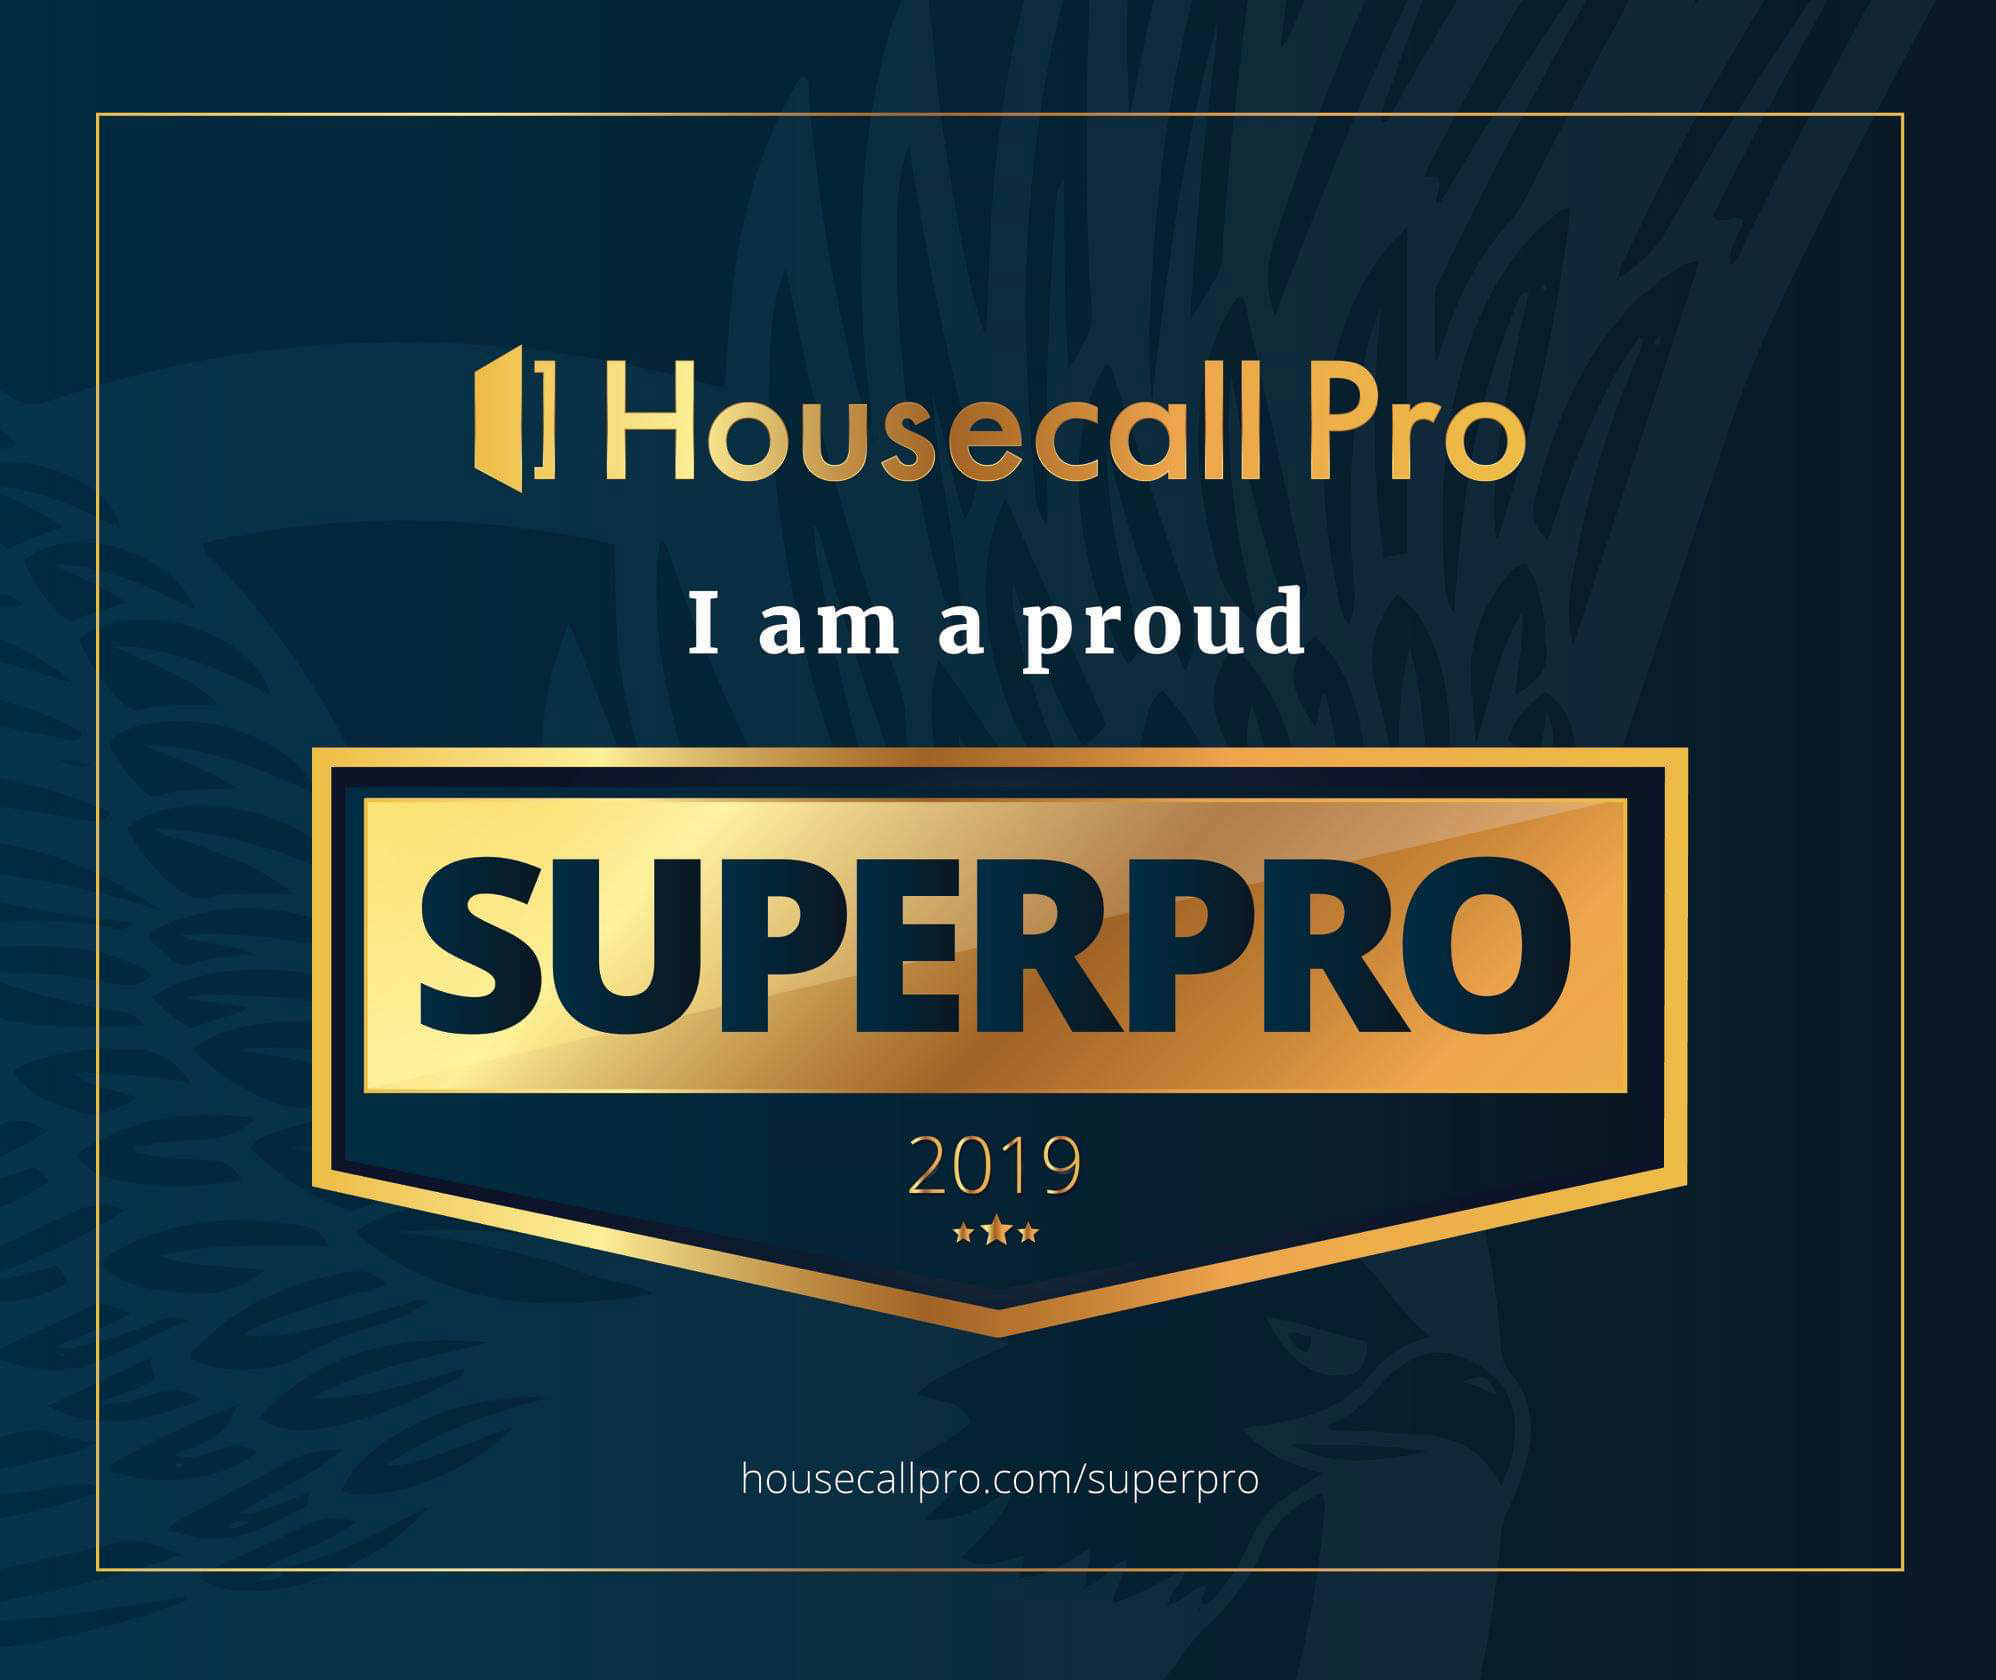 Enviro Plumbing are a Housecall Pro Superpro of 2019